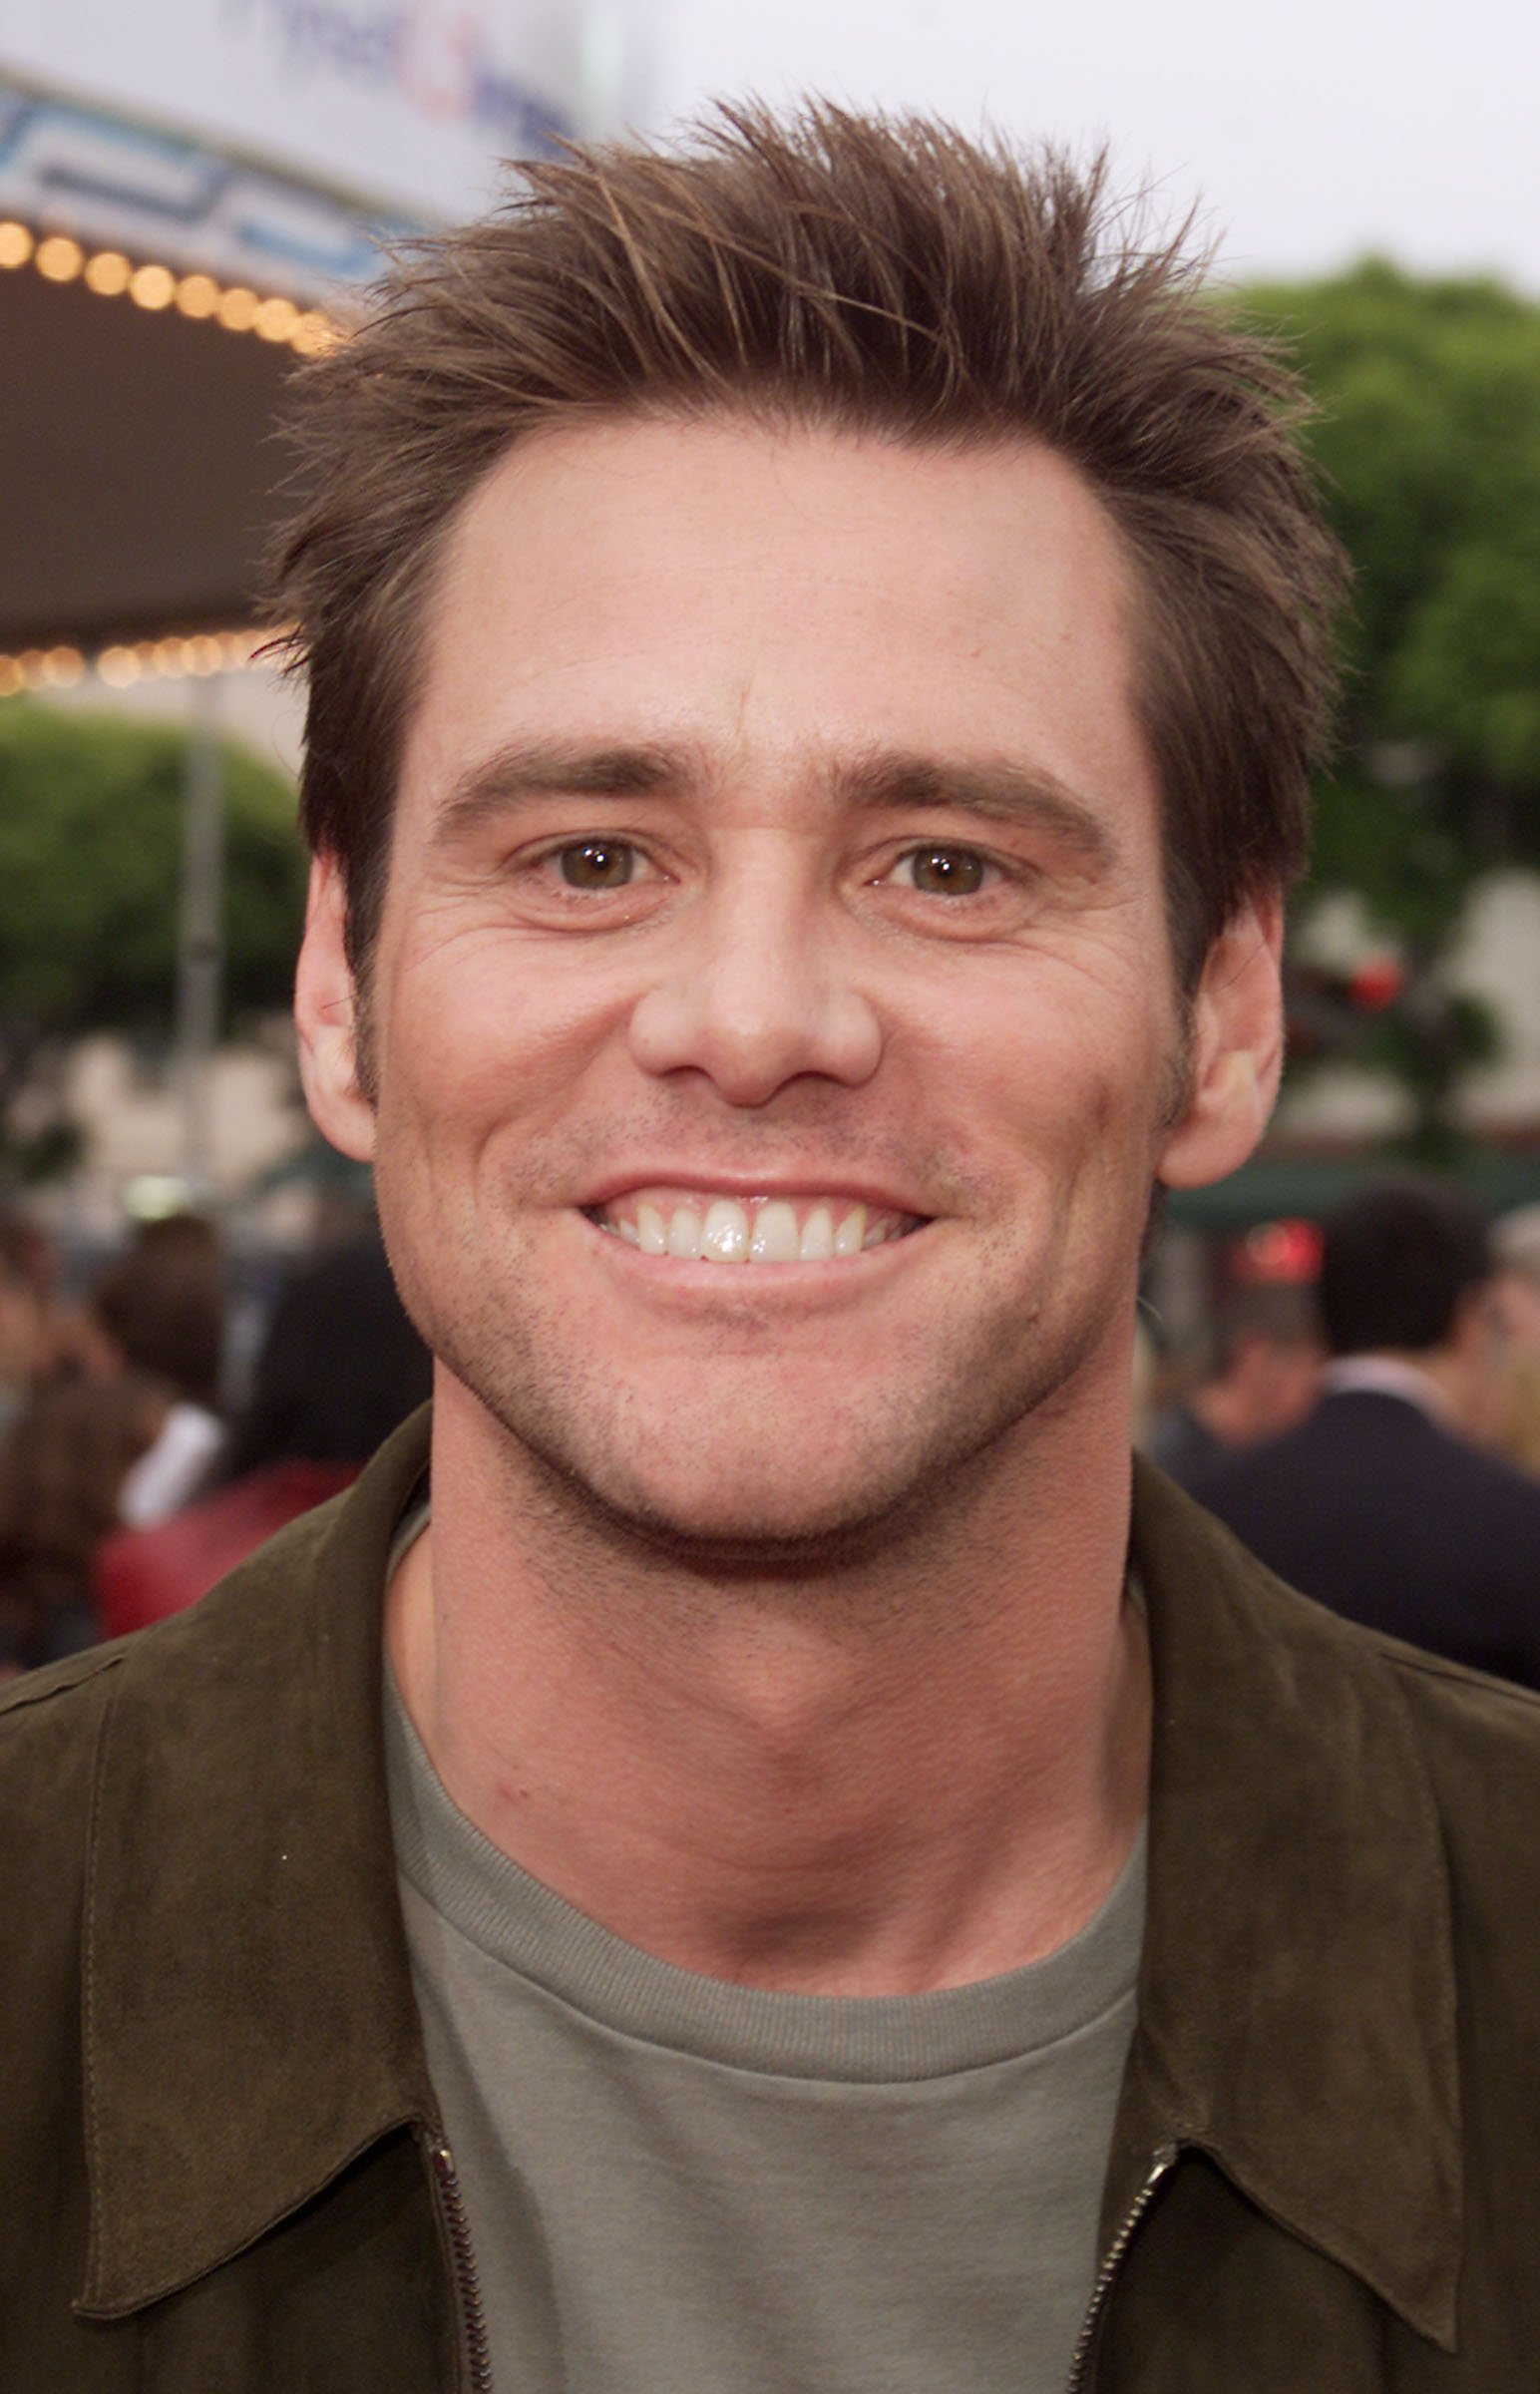 Image Source: Getty Images | Photo of Jim Carrey